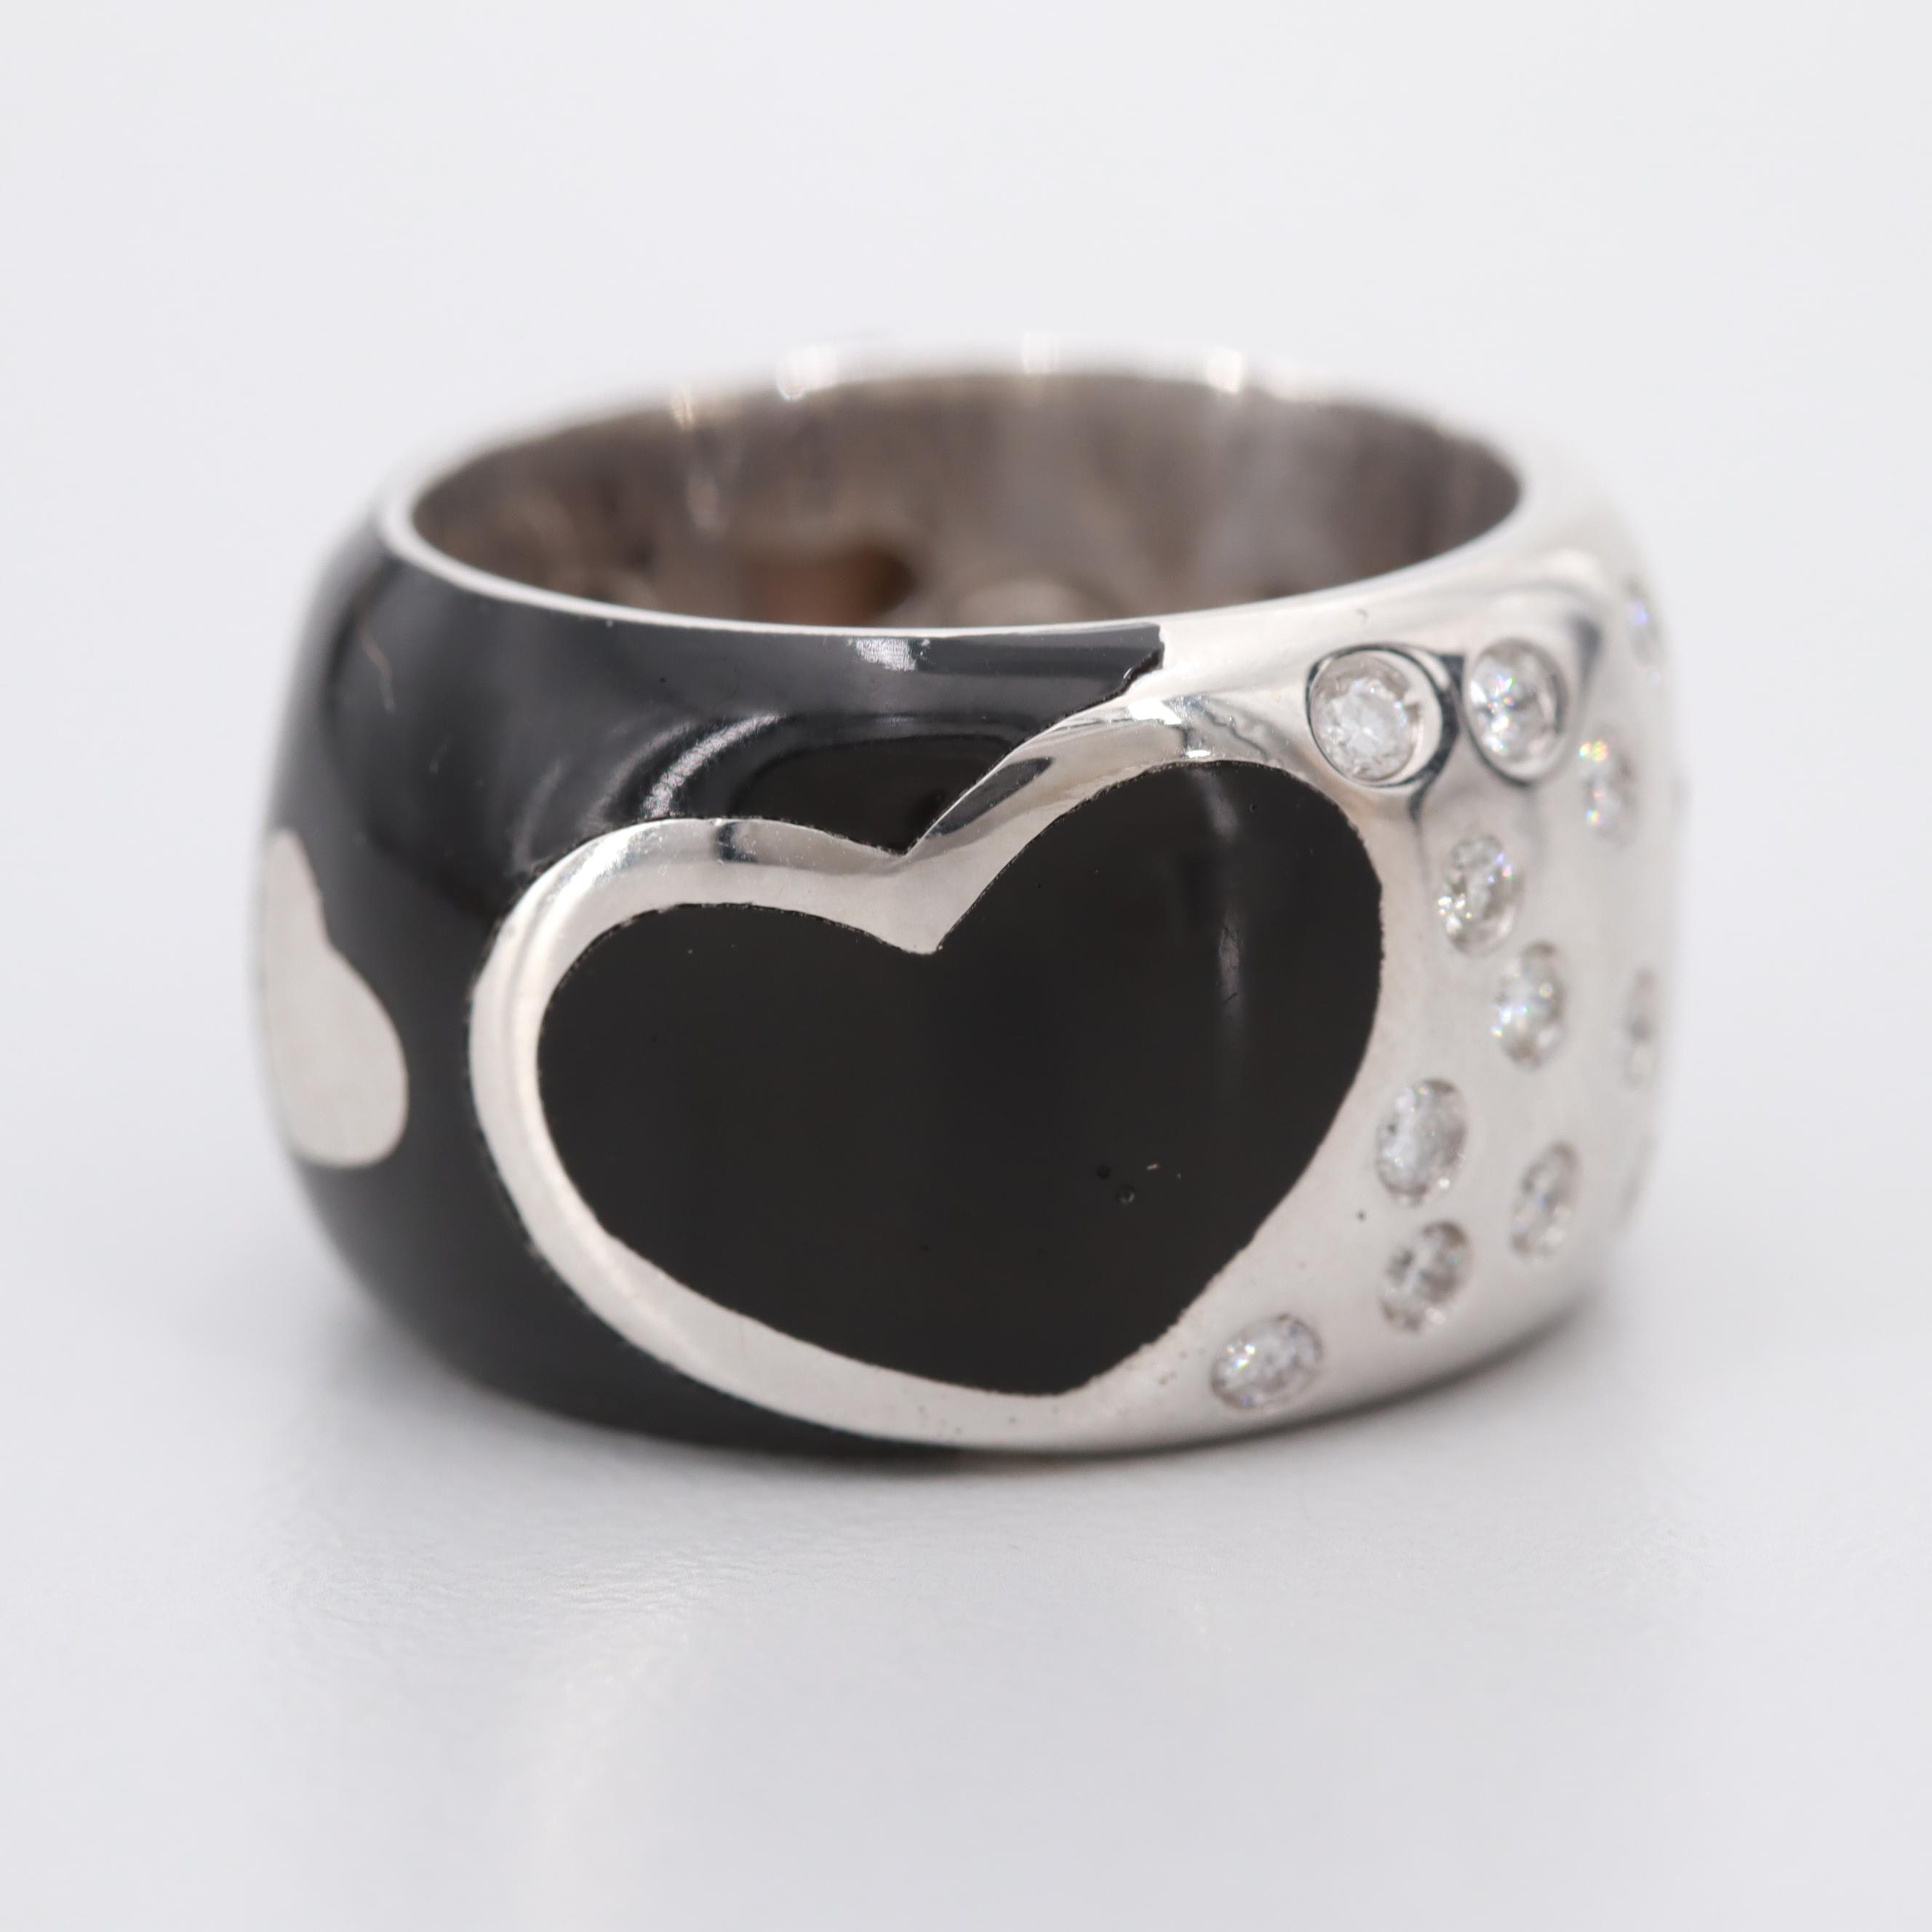 SOHO 18K White Gold Resin and Diamond Heart Motif Ring